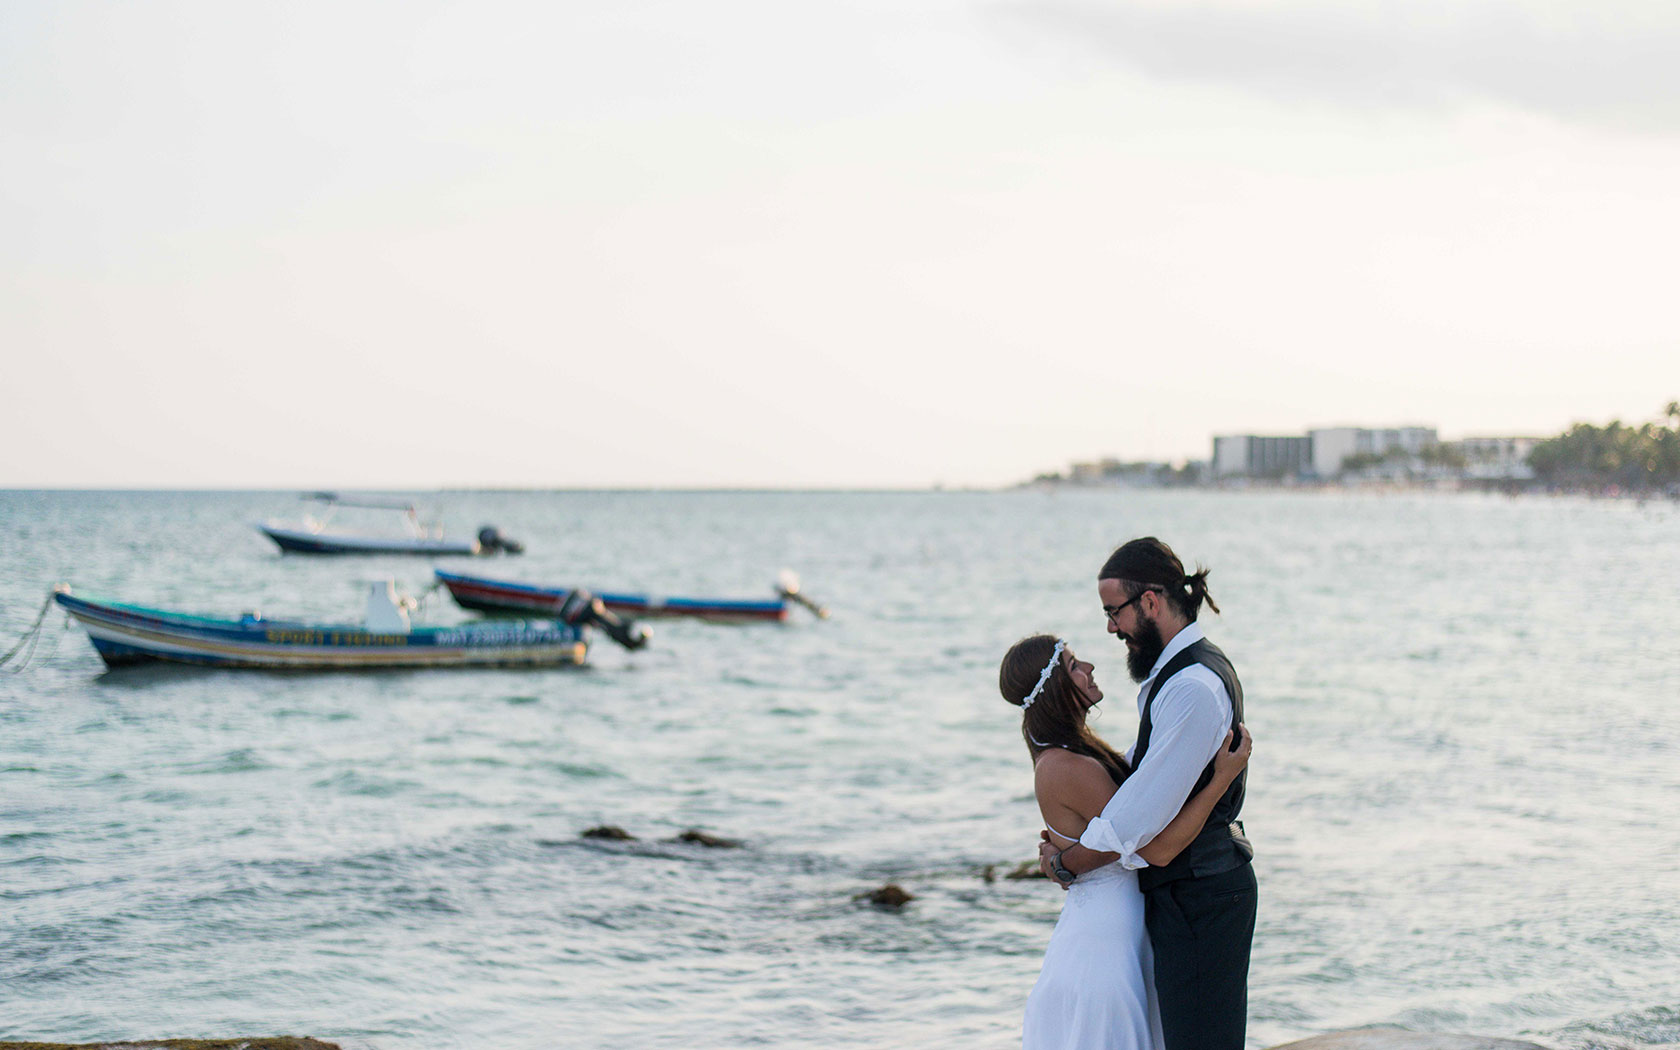 weddings-cocobeach-01-58f51b749e13c.jpg